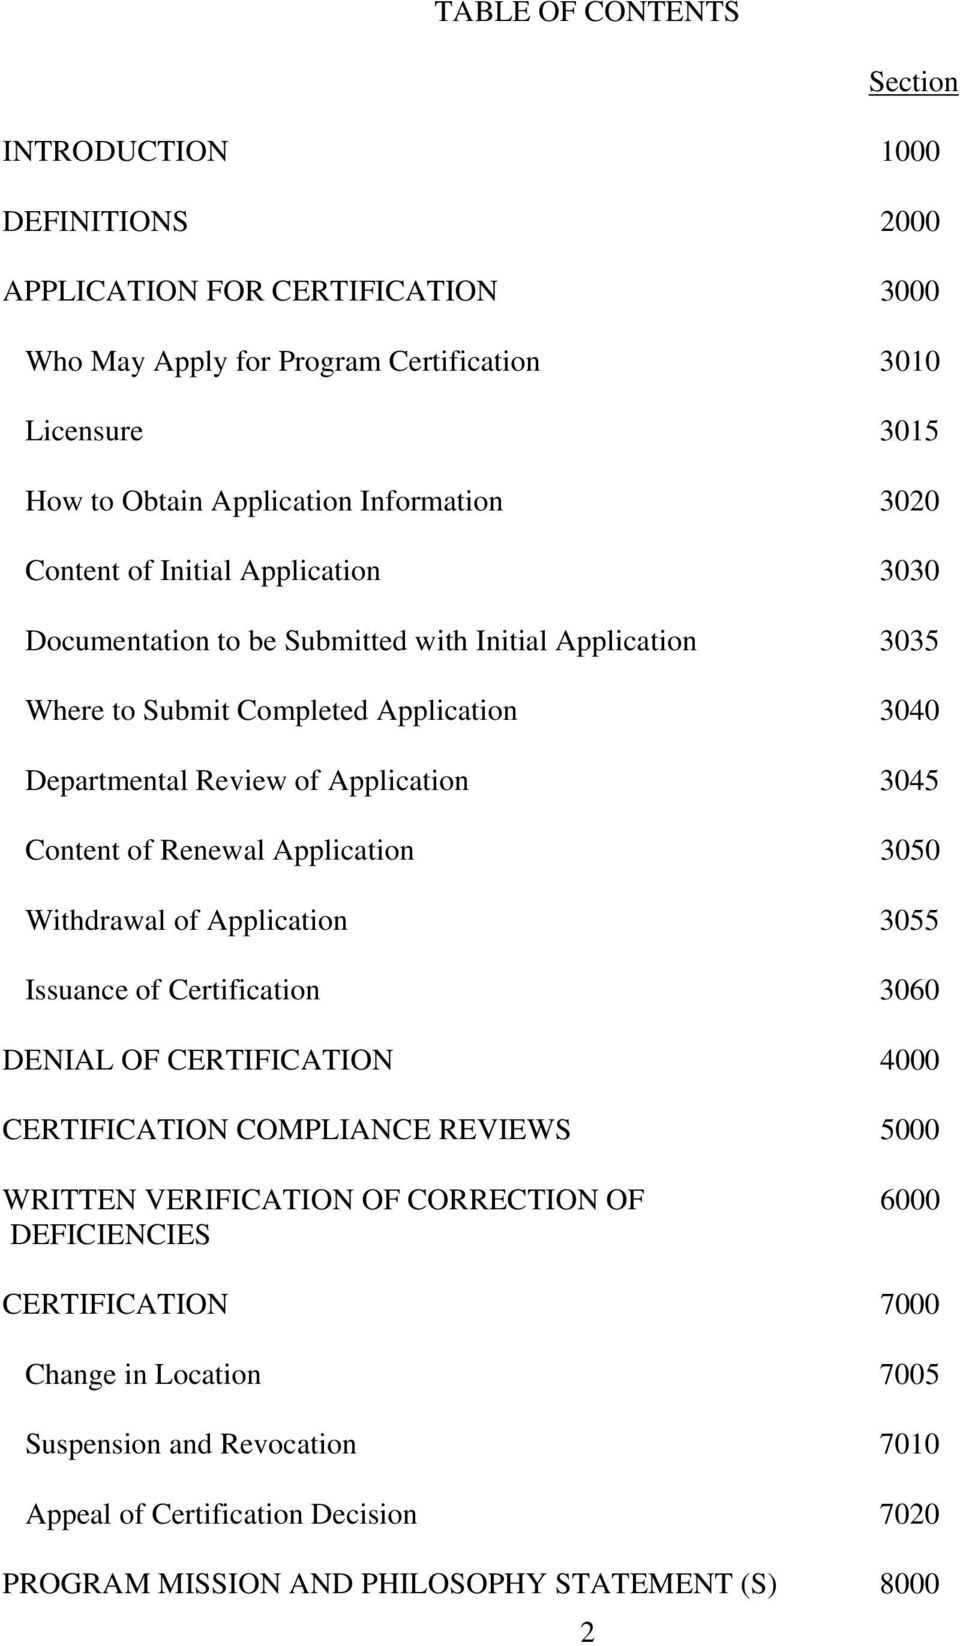 3045 Content of Renewal Application 3050 Withdrawal of Application 3055 Issuance of Certification 3060 DENIAL OF CERTIFICATION 4000 CERTIFICATION COMPLIANCE REVIEWS 5000 WRITTEN VERIFICATION